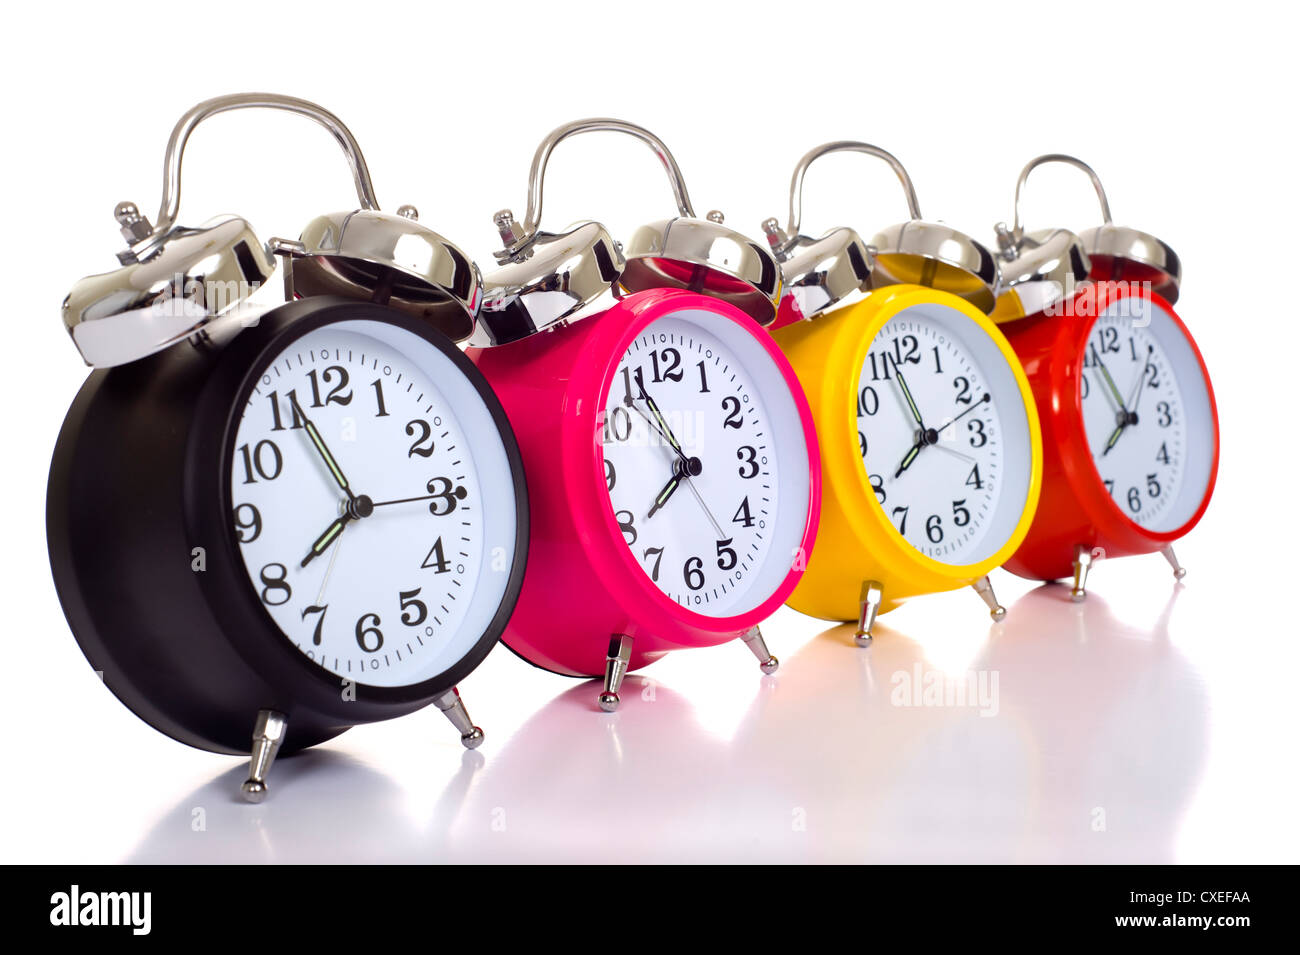 A row of colorful alarm clocks on a white background with copy space. Time concept - Stock Image